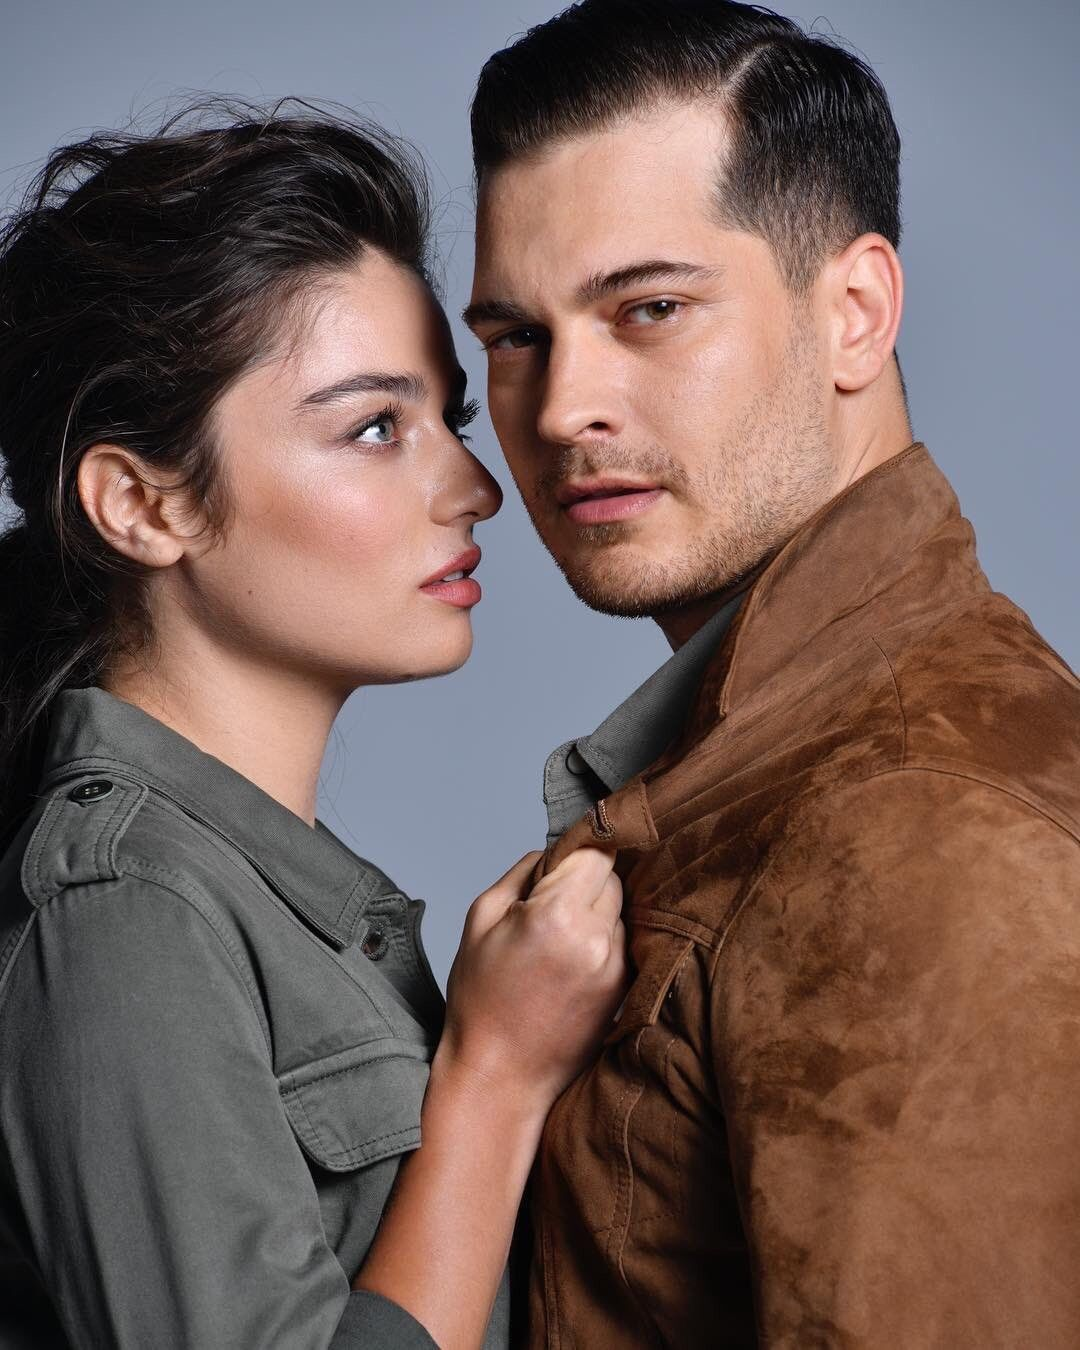 Pin By A F On Cagatay Ulusoy The Protector Cagatay Ulusoy